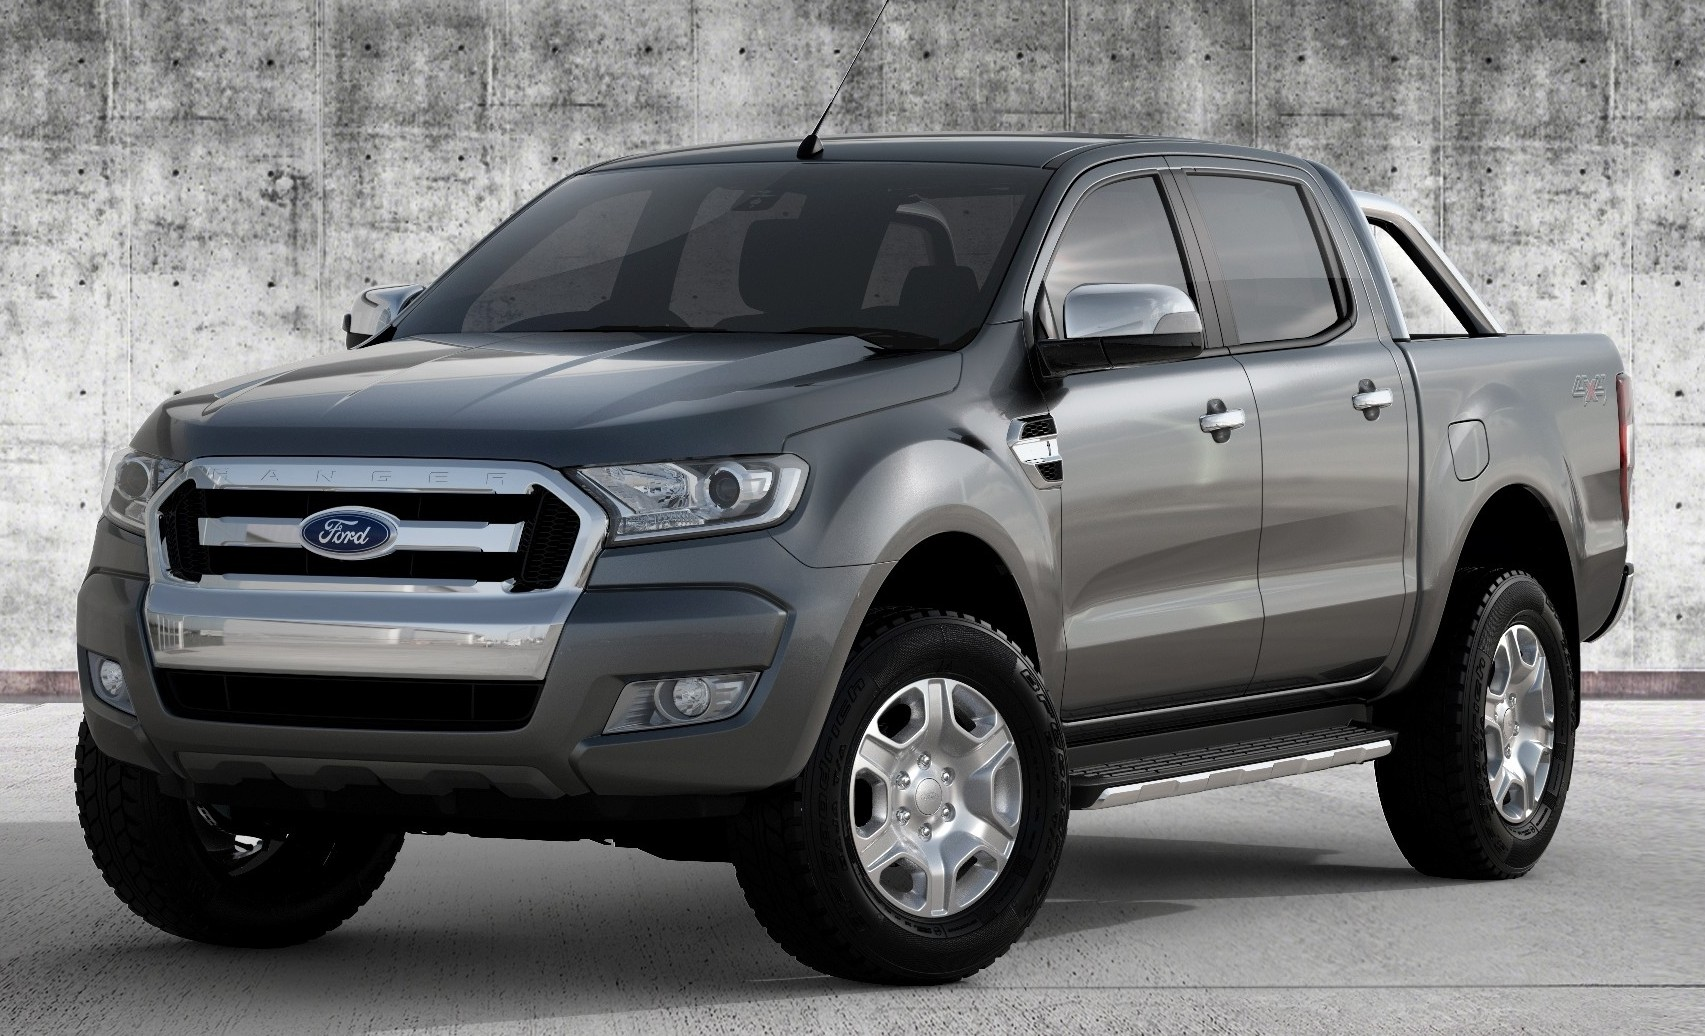 ford ranger t6 facelift teased showing all new face. Black Bedroom Furniture Sets. Home Design Ideas